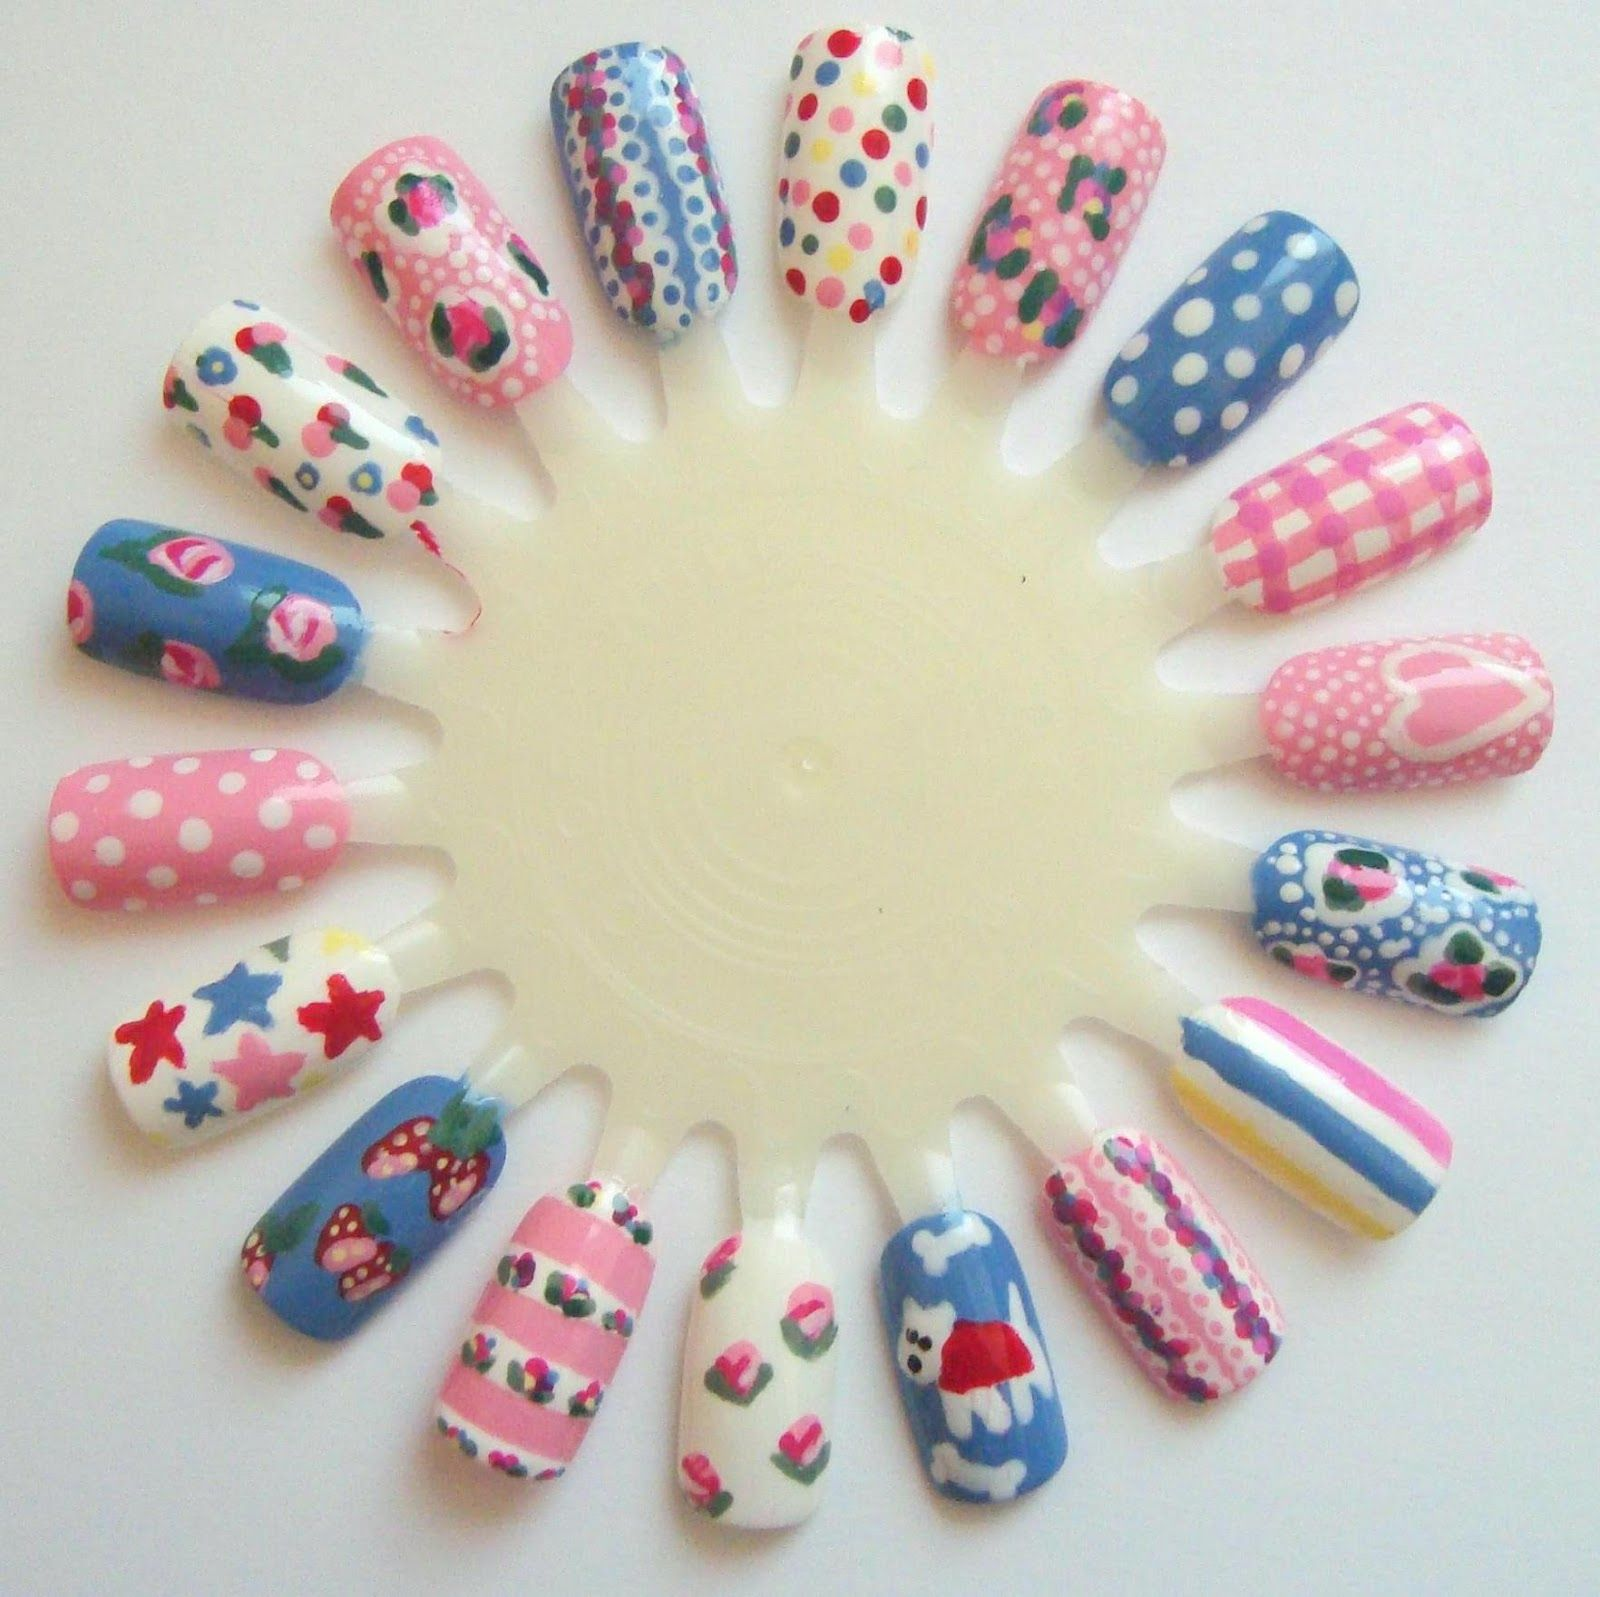 nail art on nail wheels - Google Search | Nails ☆ | Pinterest ...